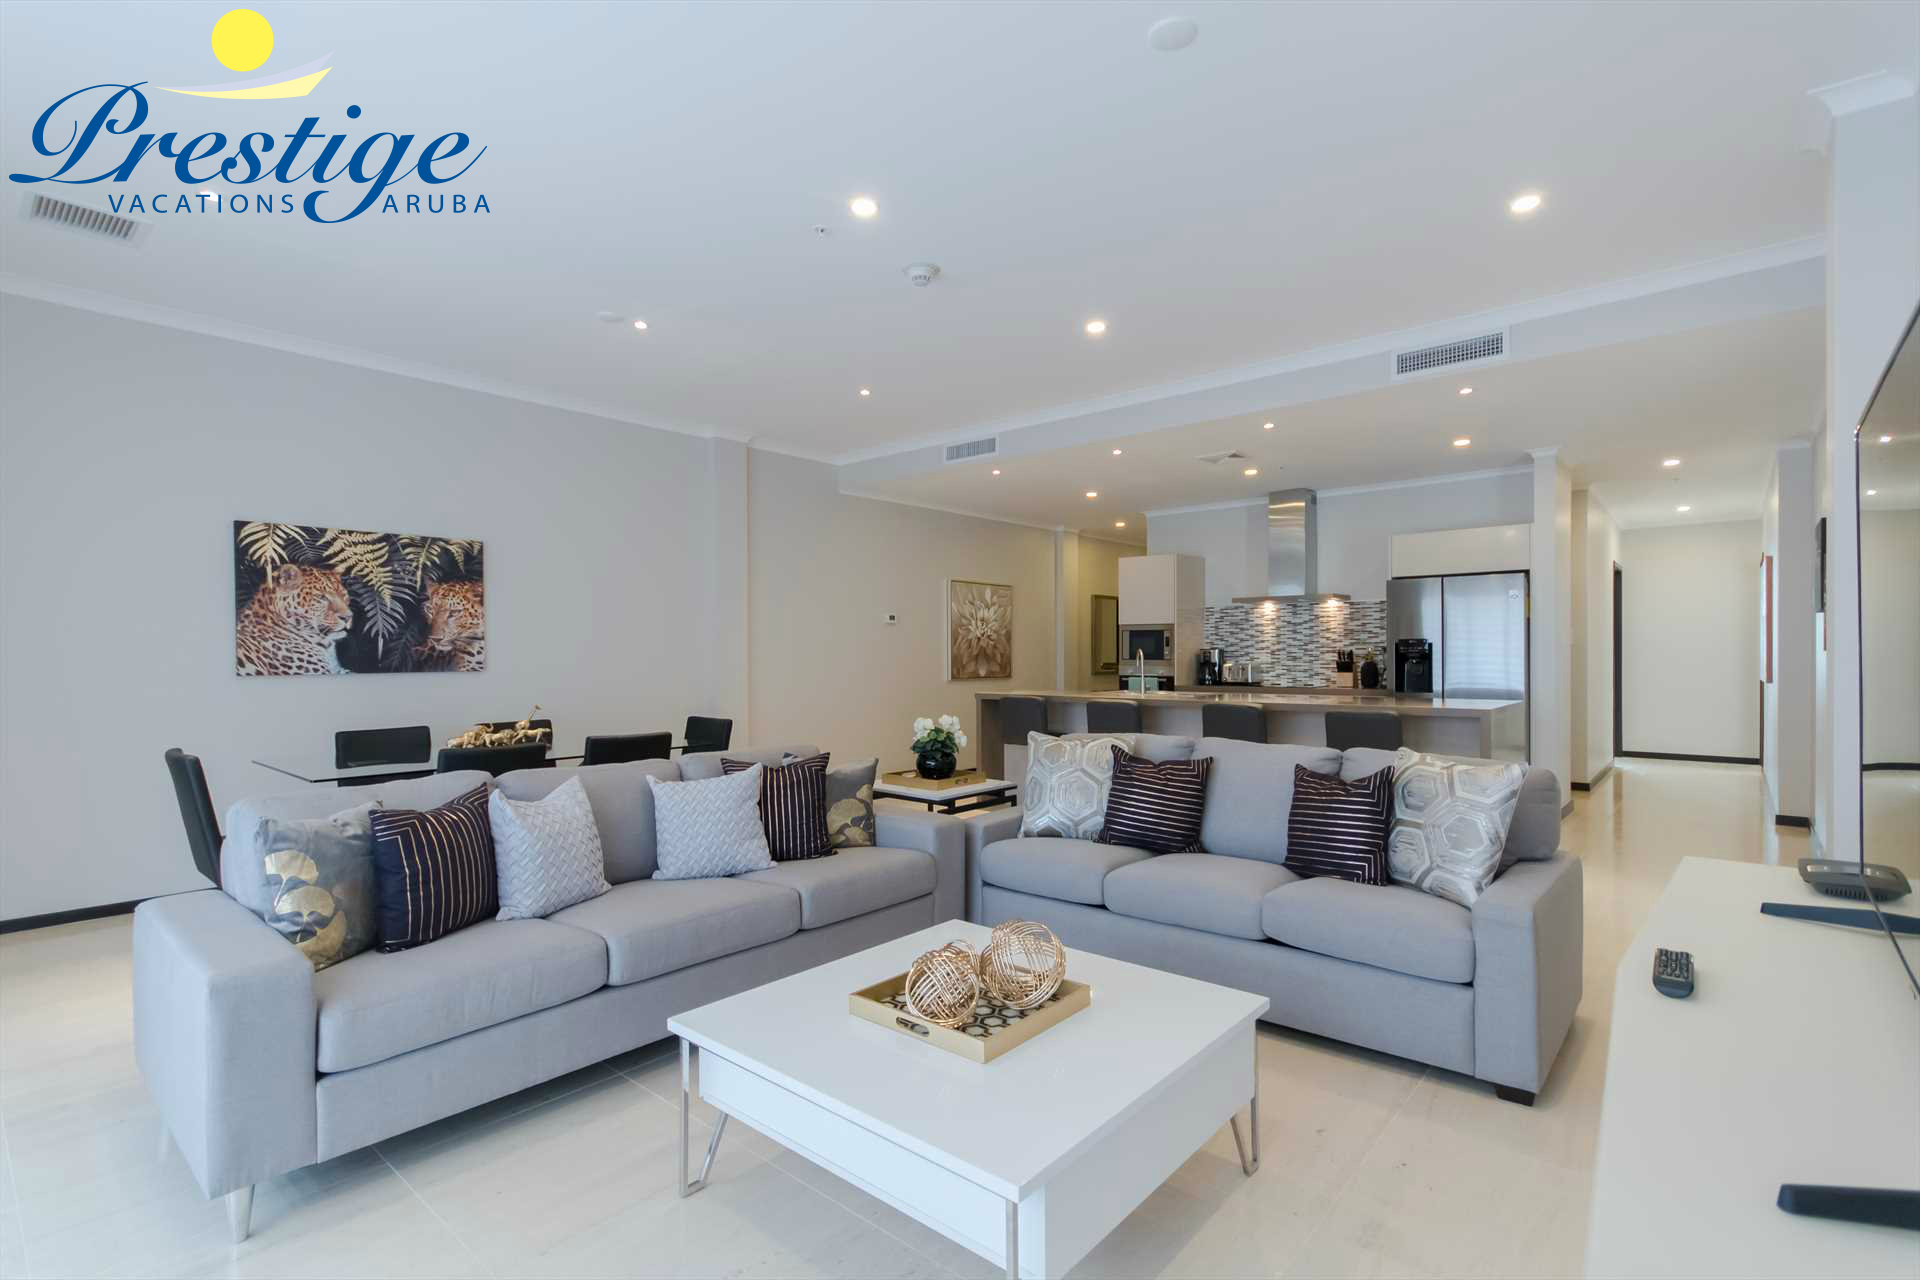 The living area is provided with a large Smart TV and a sofa-bed